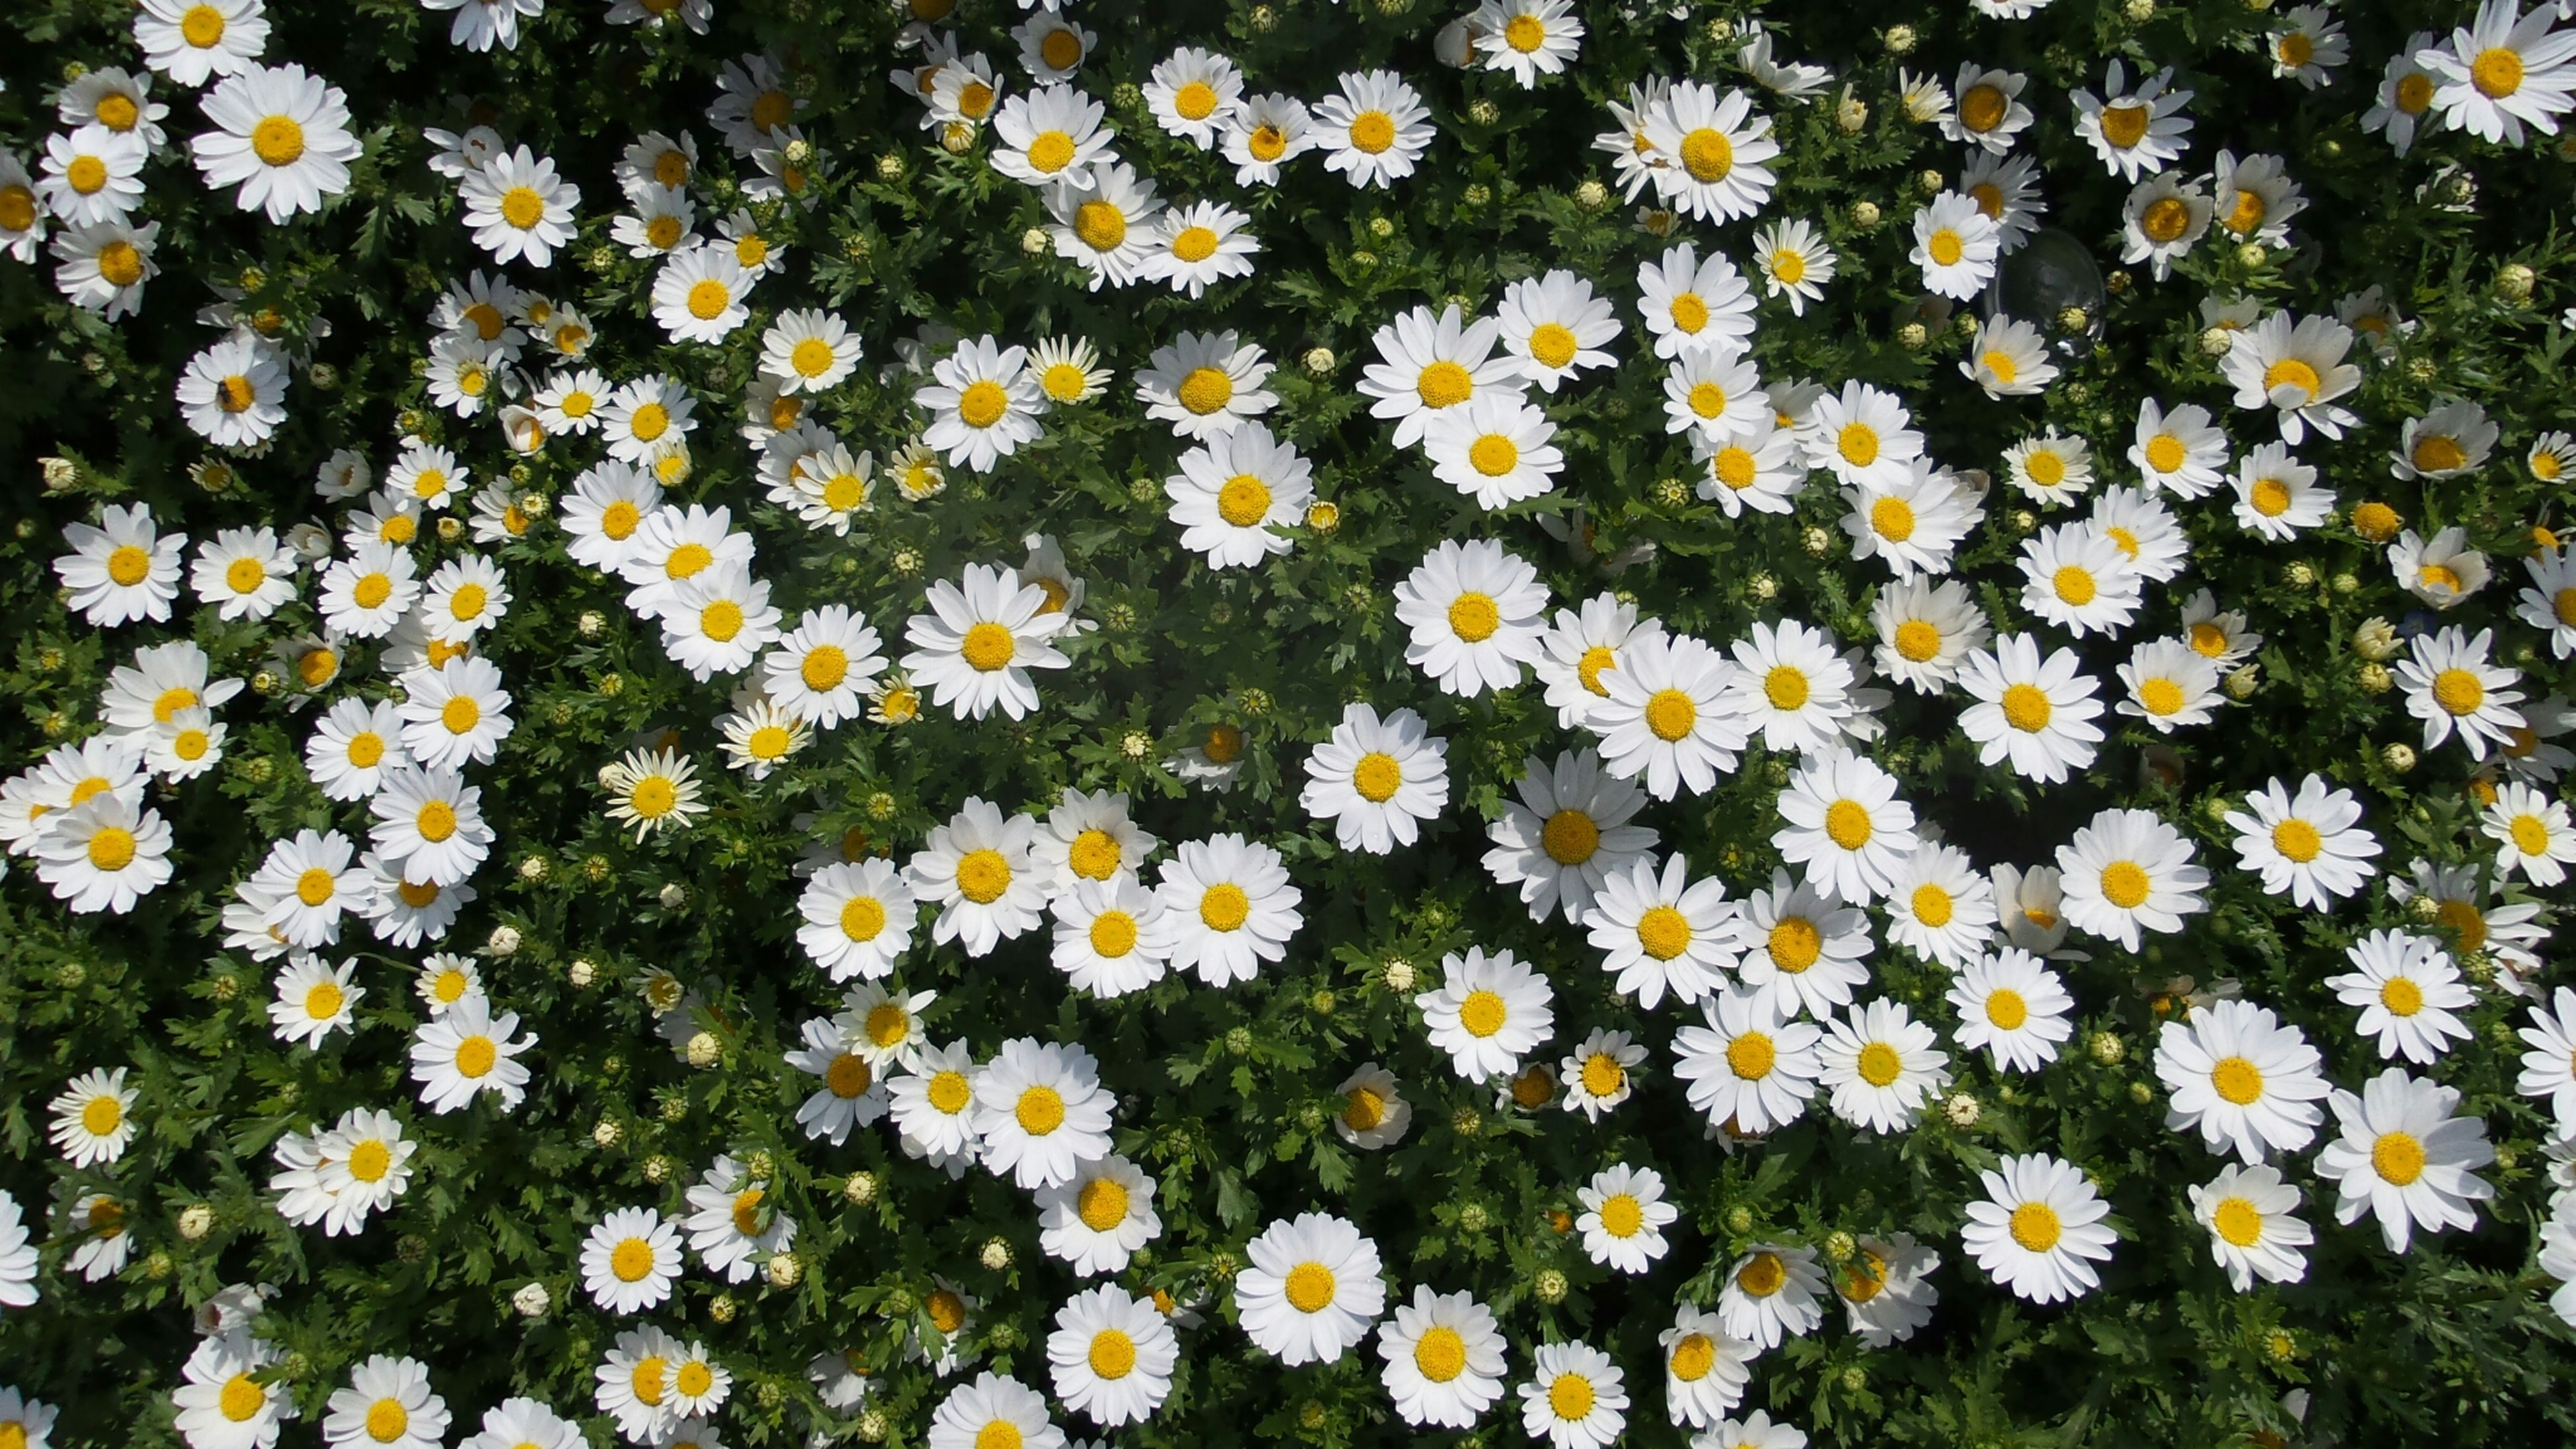 flower, freshness, fragility, growth, petal, daisy, white color, beauty in nature, yellow, flower head, high angle view, nature, blooming, plant, full frame, field, backgrounds, abundance, in bloom, blossom